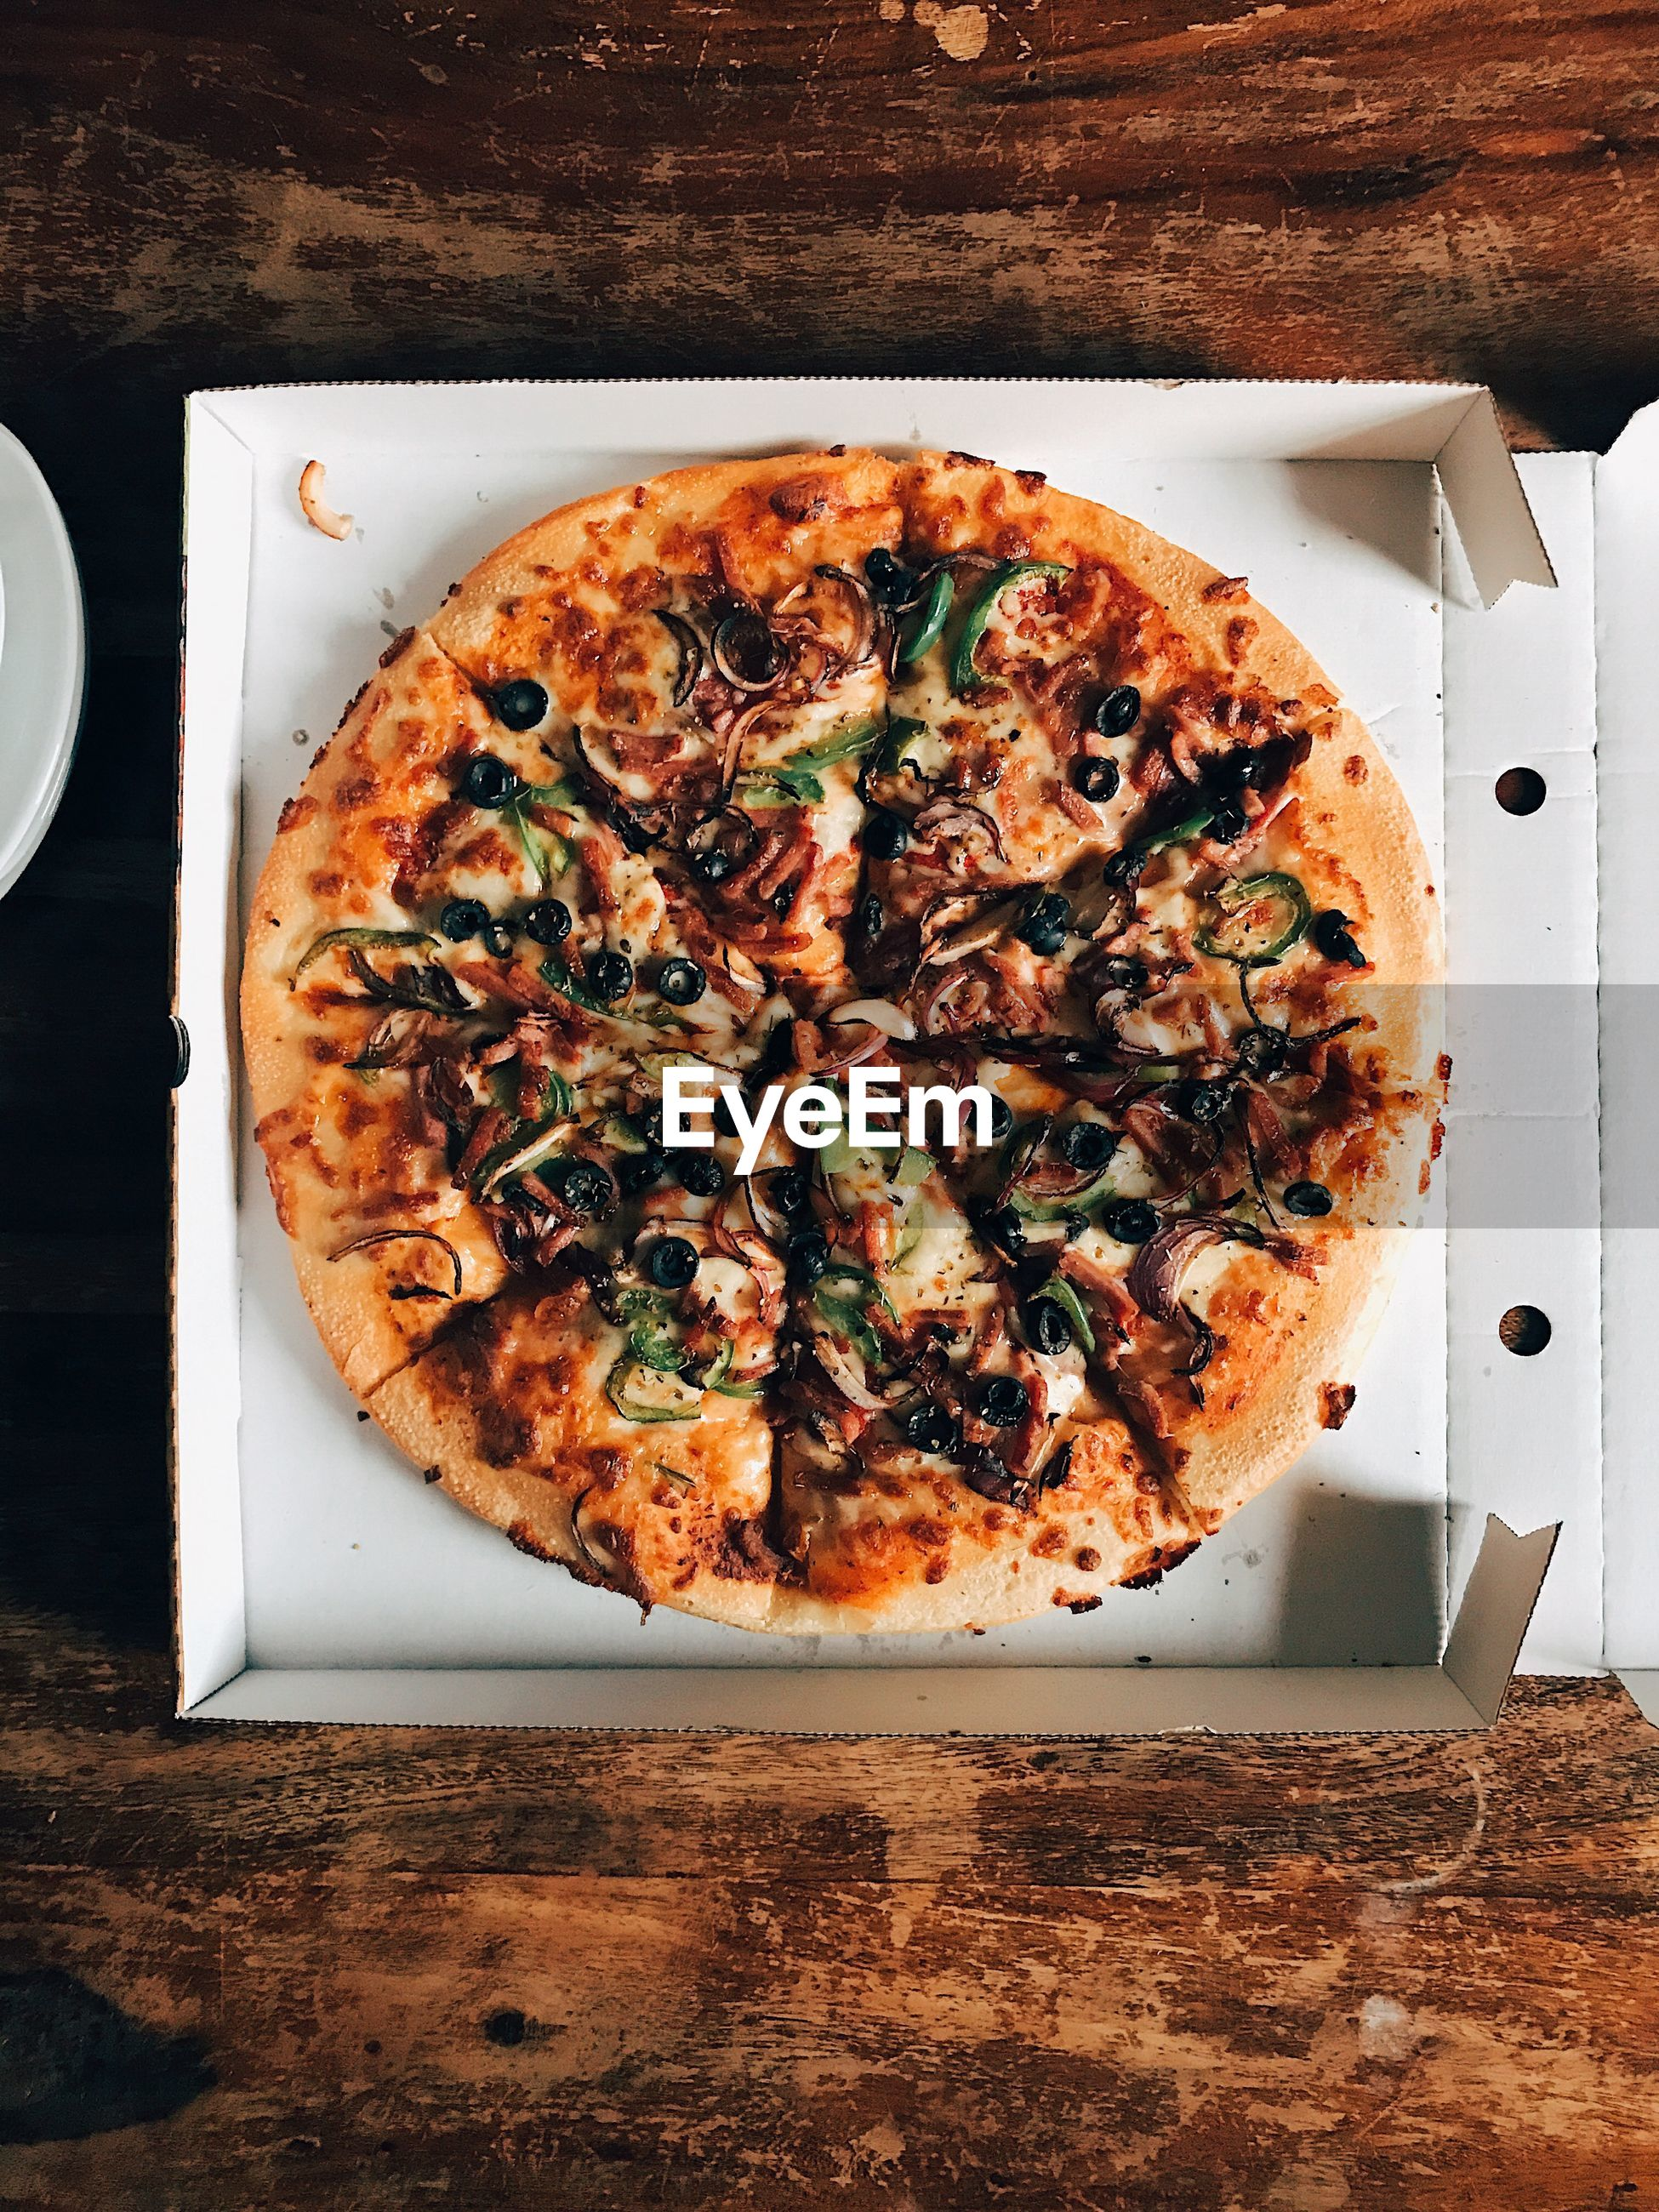 HIGH ANGLE VIEW OF PIZZA ON PLATE